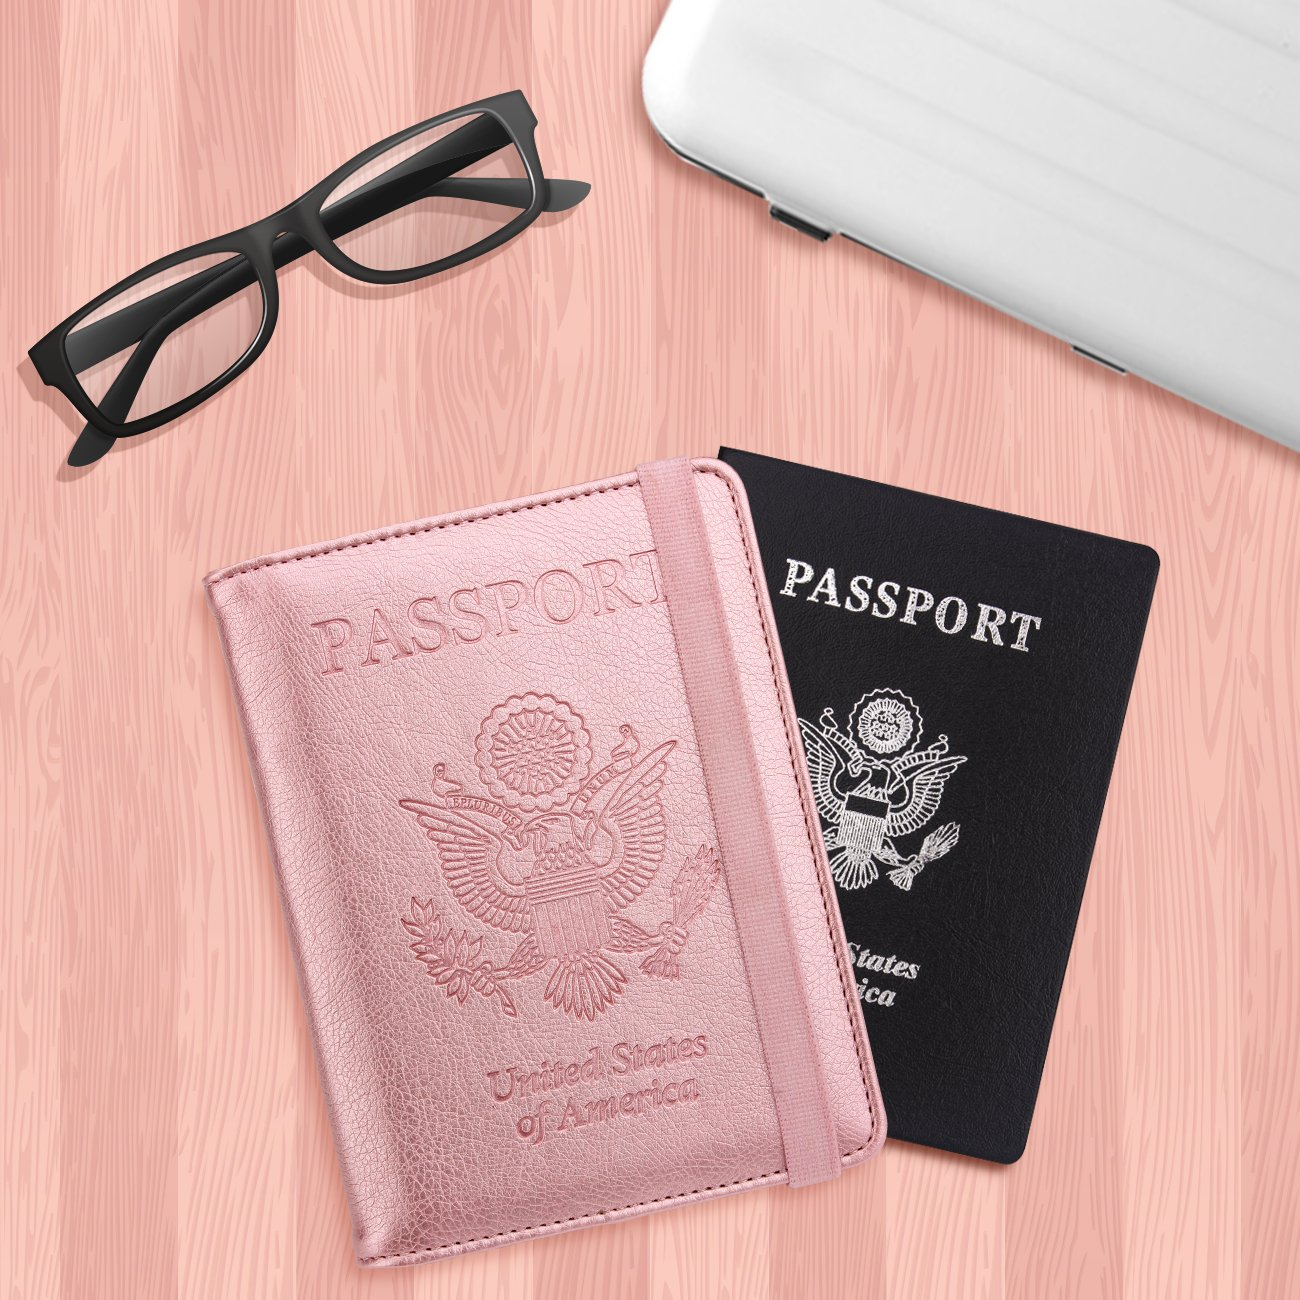 WALNEW RFID Passport Holder Cover Traveling Passport Case (Rosegold) by WALNEW (Image #7)